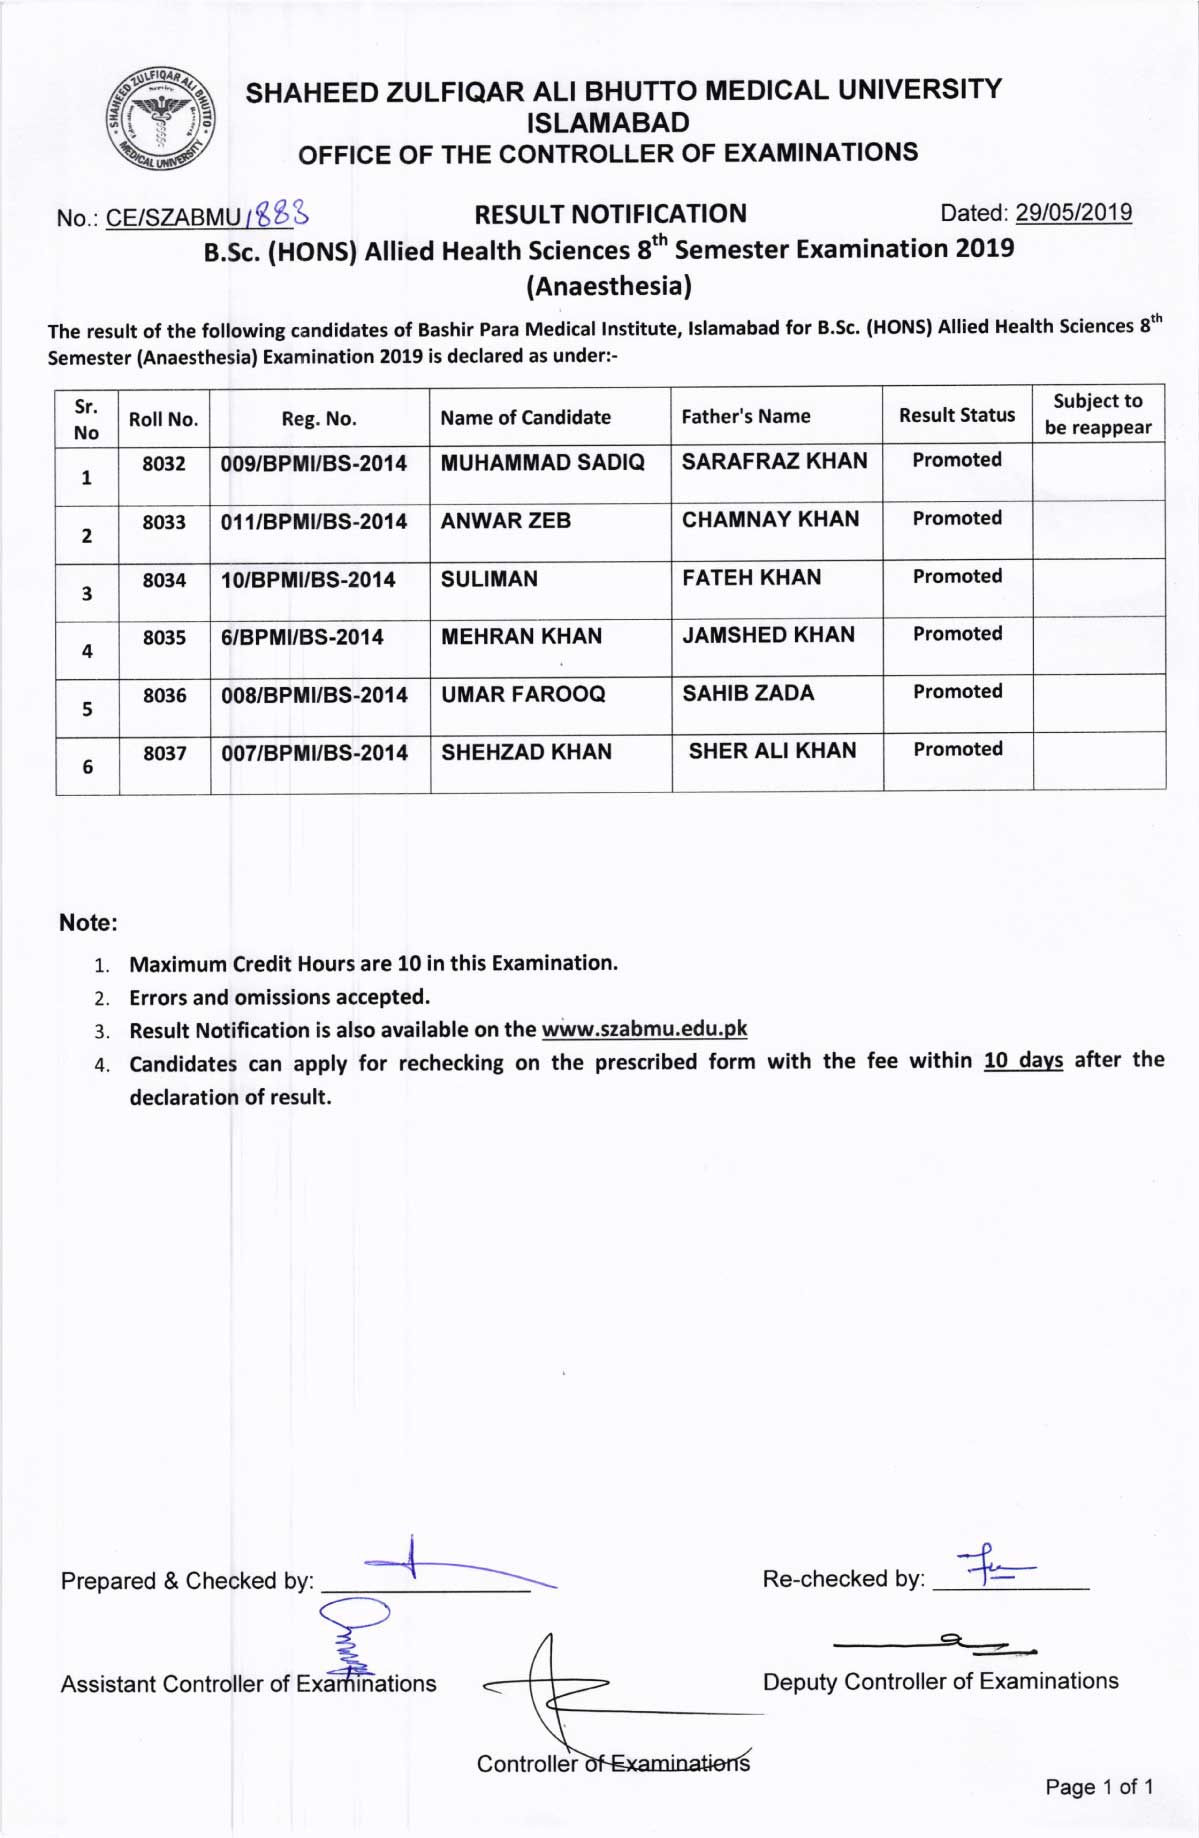 Result Notification of BS (Hons) Allied Health Sciences 8th Semester